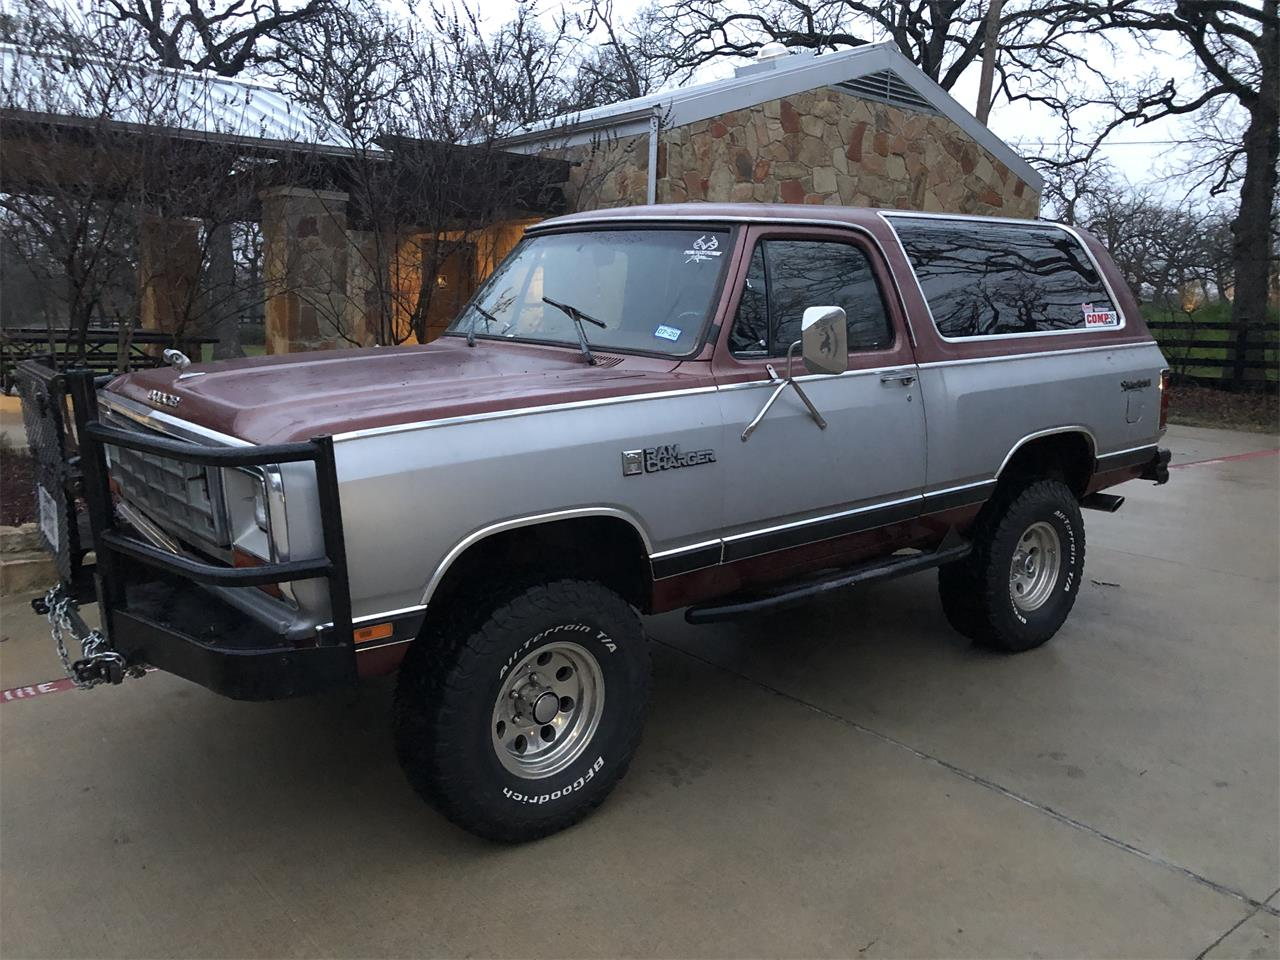 1985 Dodge Ramcharger (CC-1331625) for sale in Colleyville, Texas